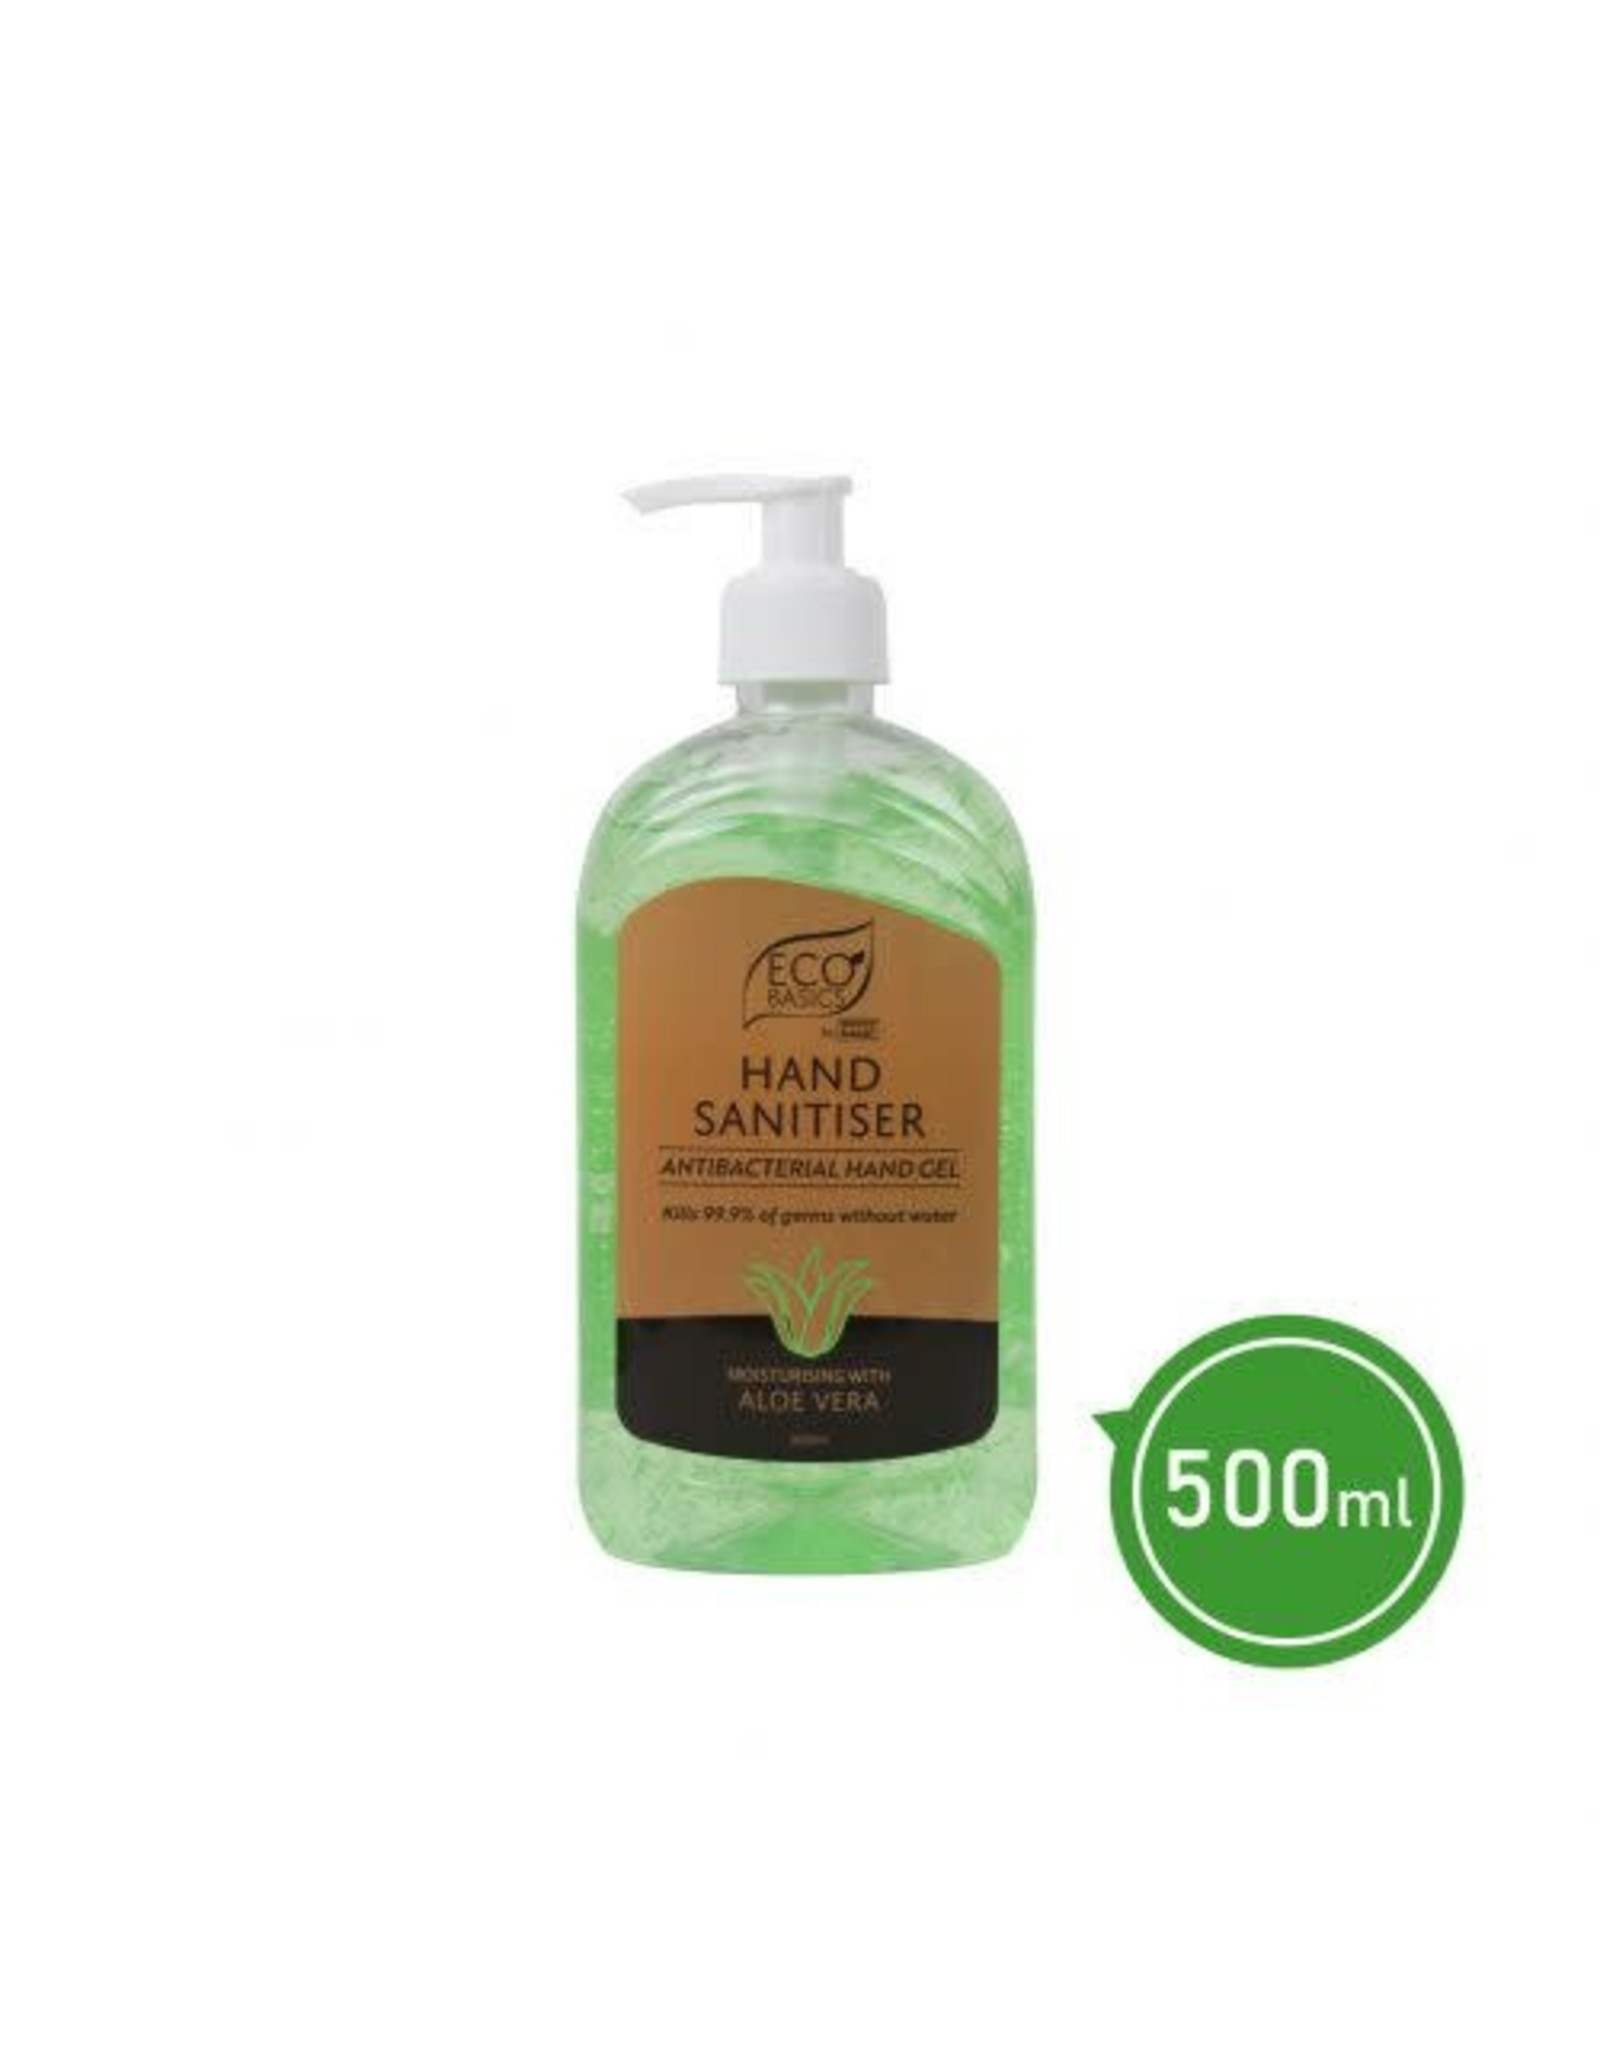 Eco Basics Hand Sanitiser - Antibacterial Hand Gel with Aloe Vera